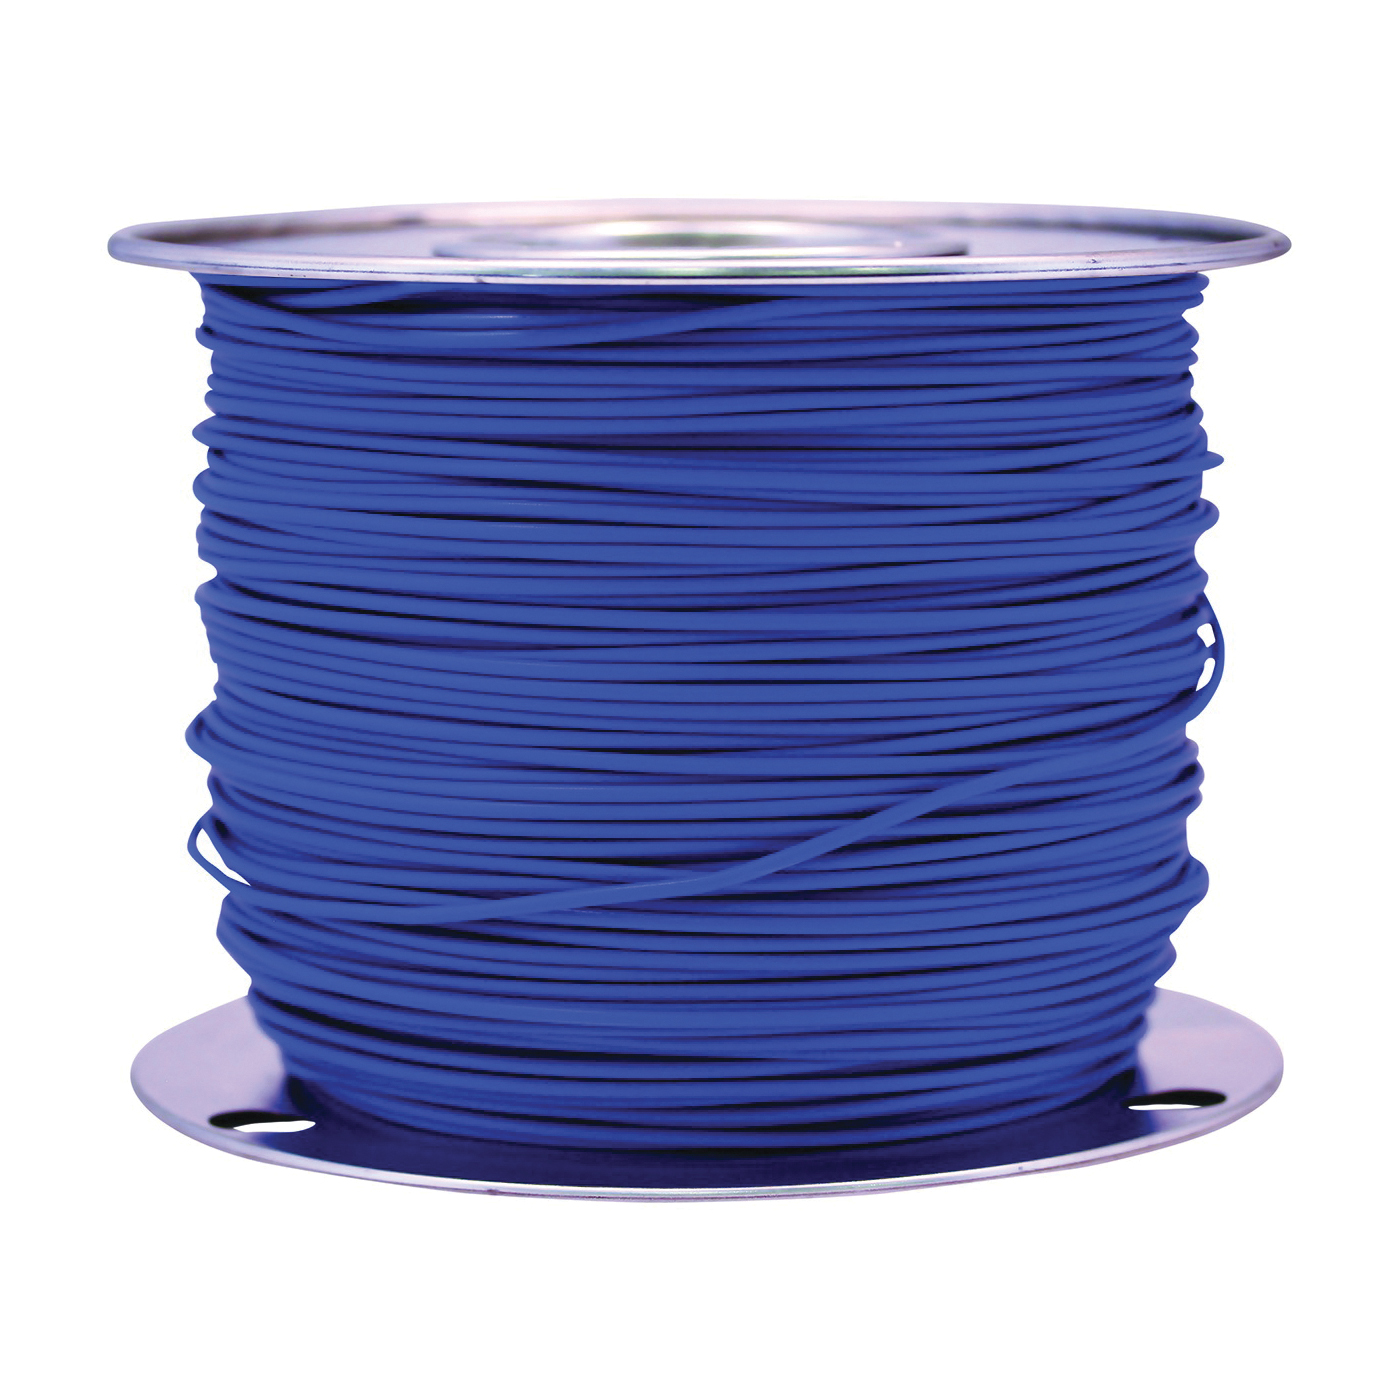 Picture of CCI 55671623 Primary Wire, 12 AWG Wire, 1 -Conductor, 60 VDC, Stranded Copper Conductor, Blue Sheath